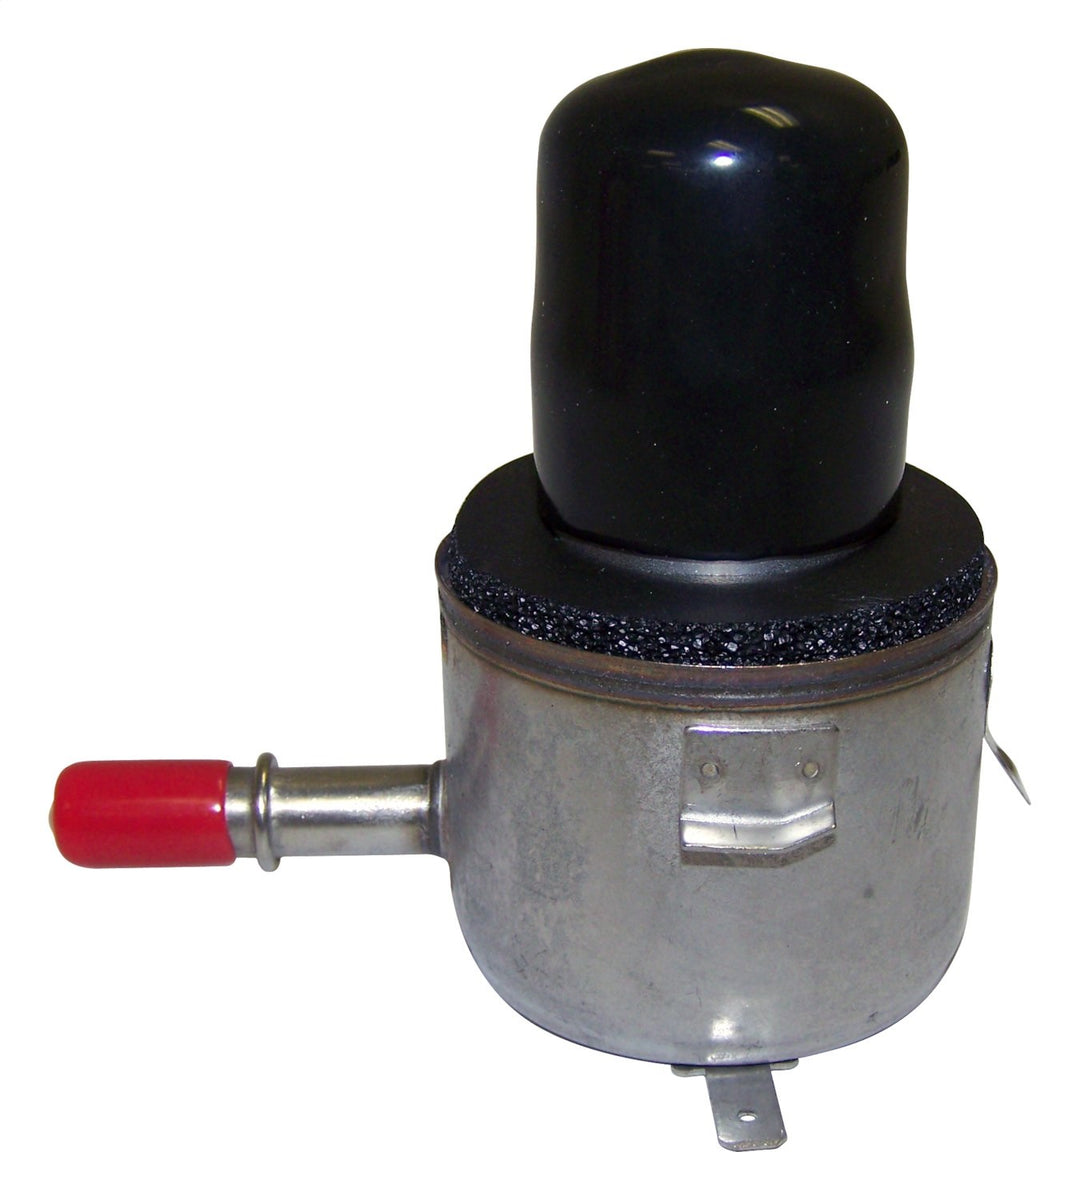 crown automotive 5278631aa fuel pressure regulator filter 2005 jeep liberty 3.7 fuel filter location 2005 jeep liberty 3.7 fuel filter location 2005 jeep liberty 3.7 fuel filter location 2005 jeep liberty 3.7 fuel filter location